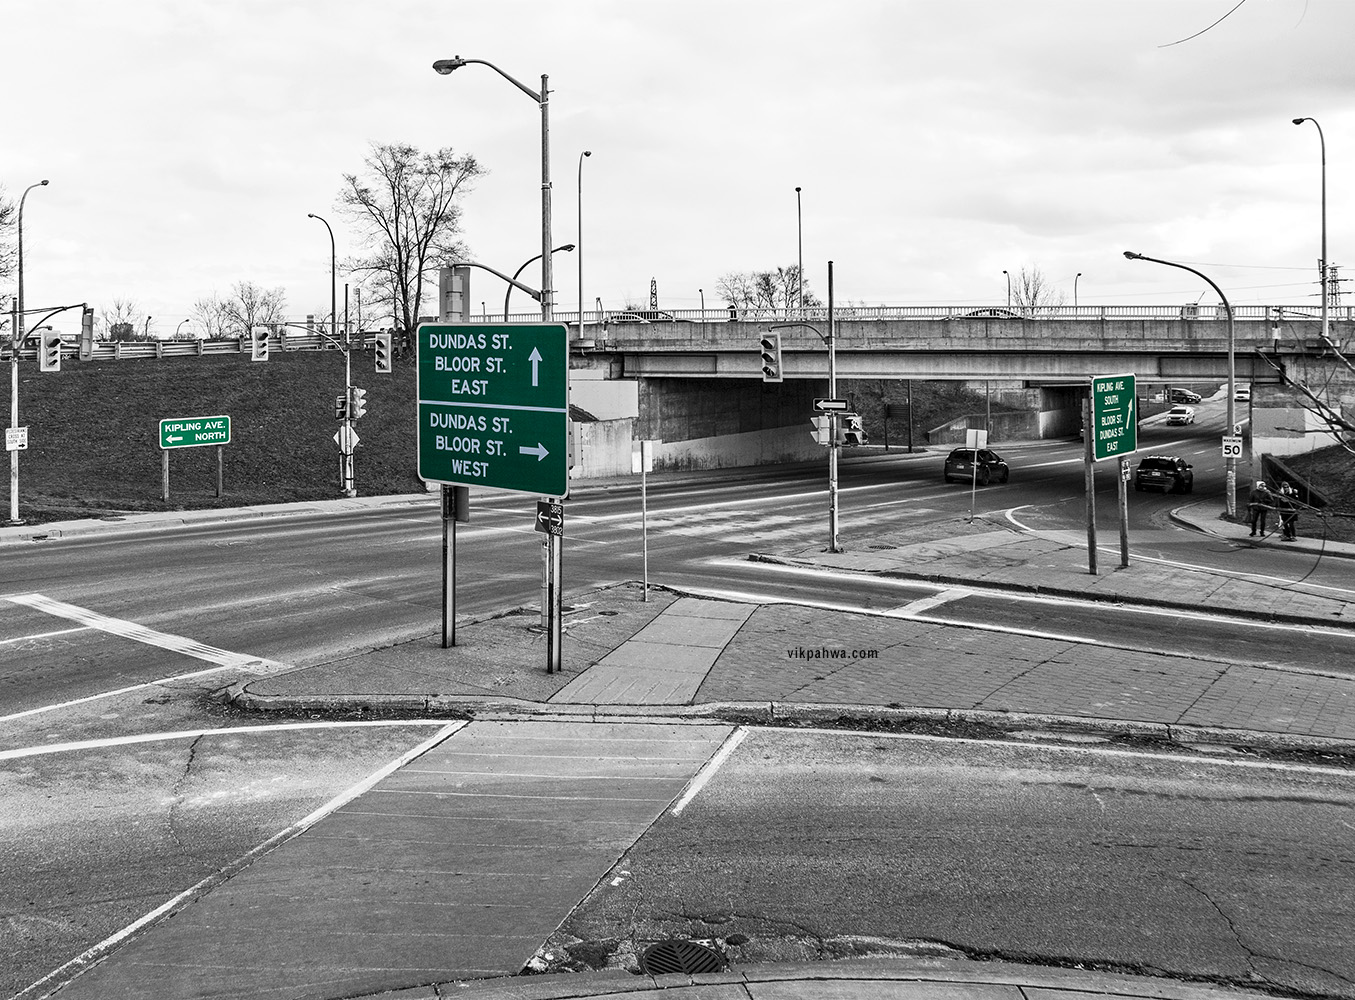 20170130. The convoluted series of ramps that is Etobicoke's Six